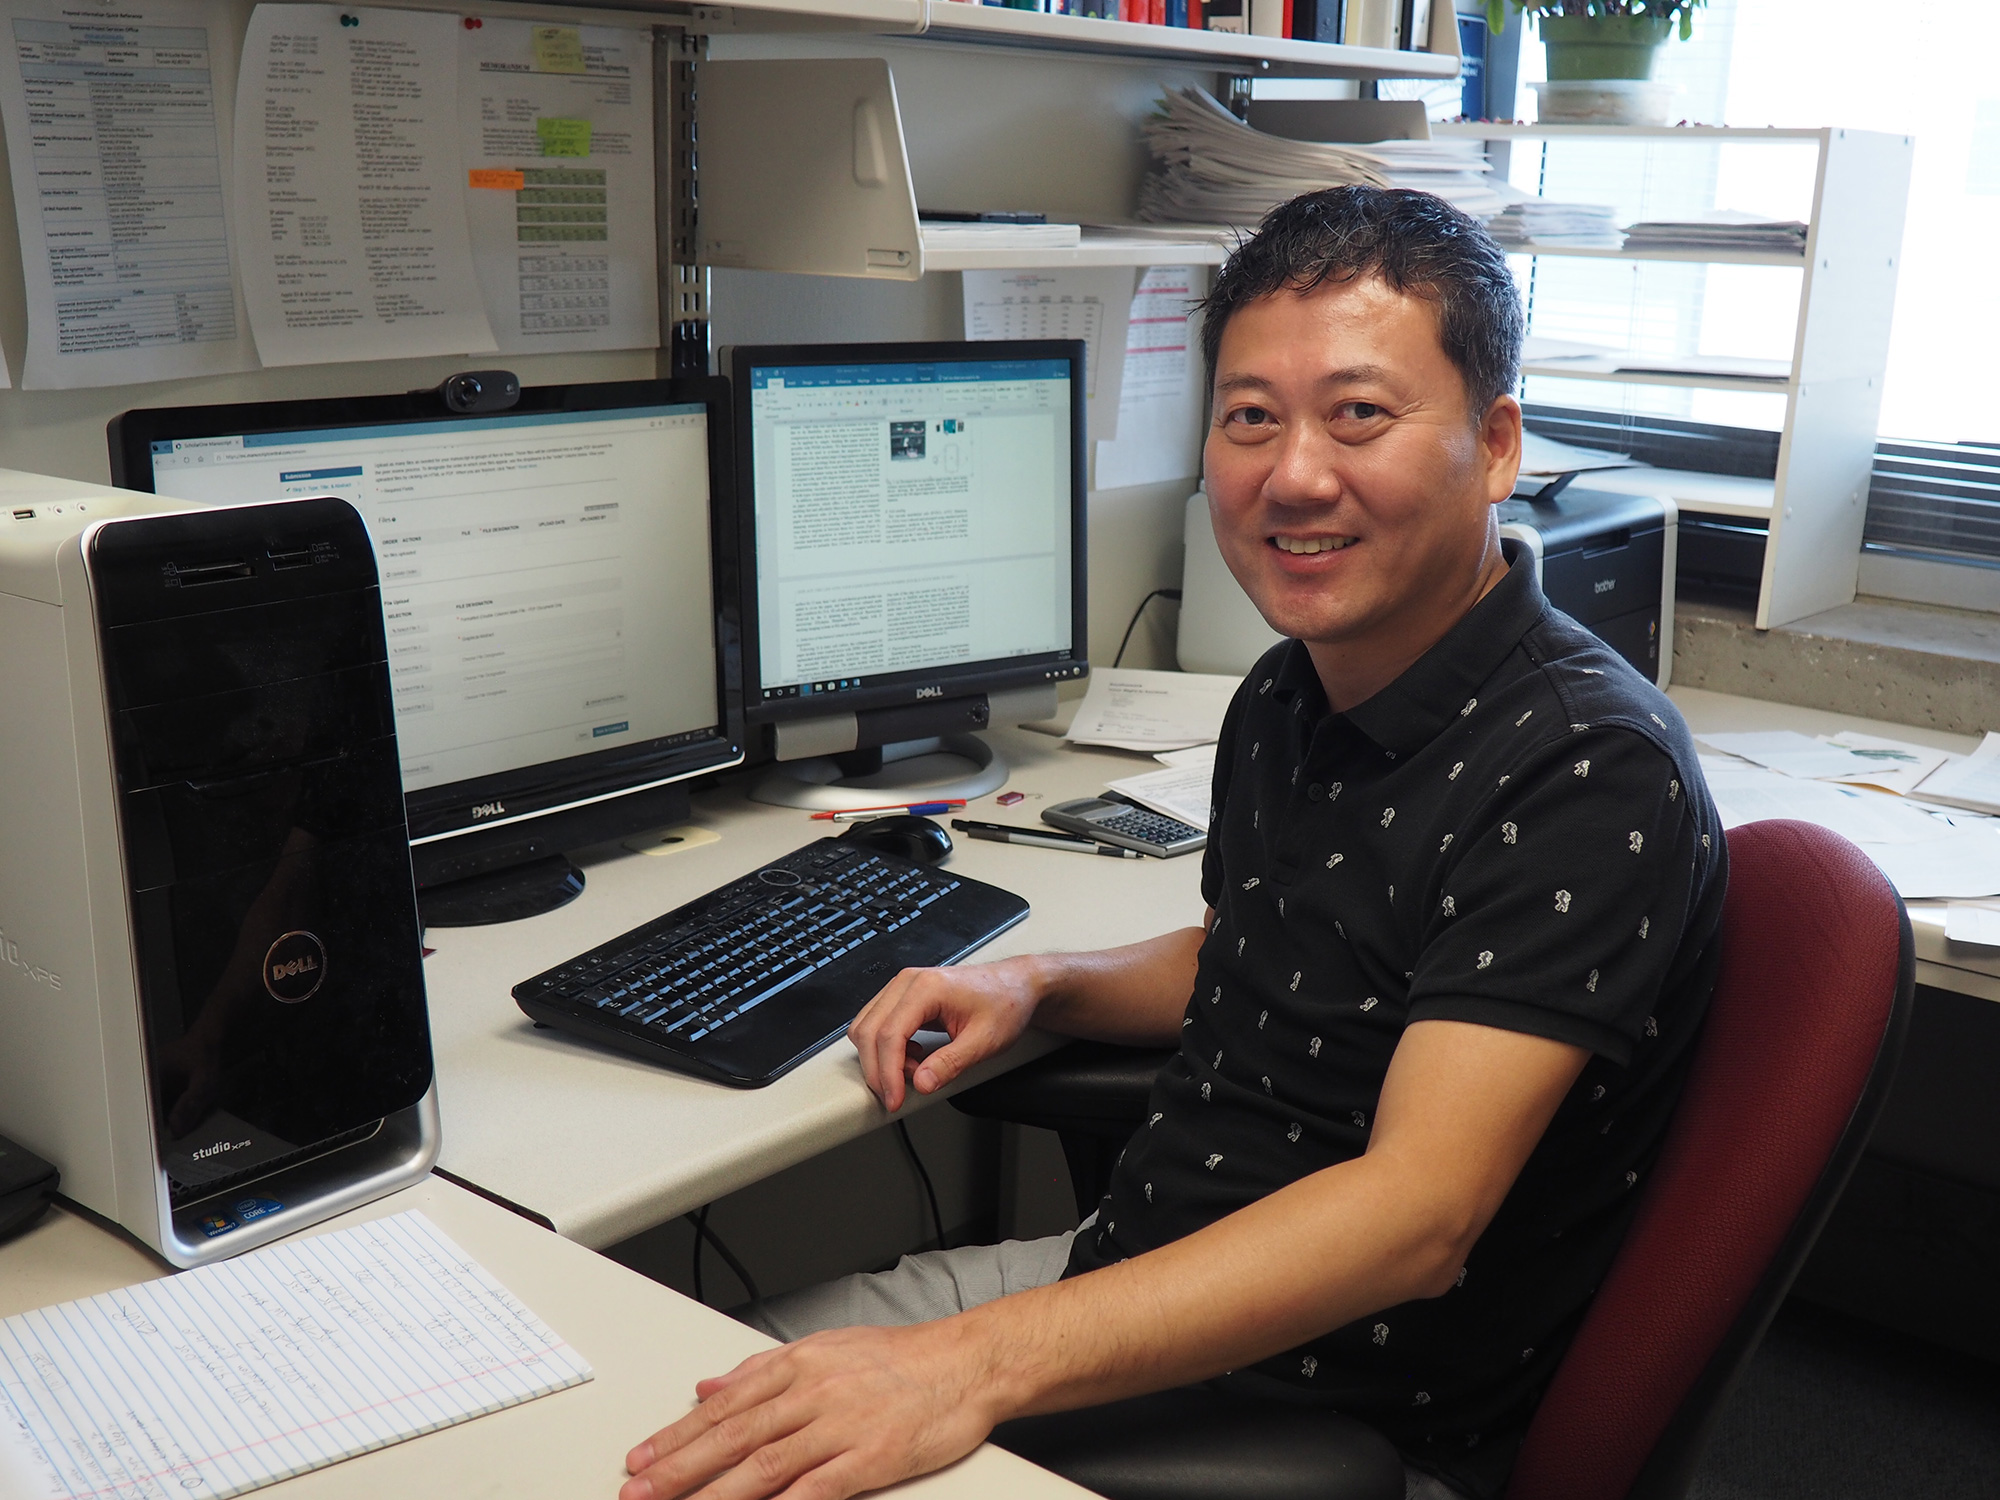 A team of University of Arizona researchers led by Jeong-Yeol Yoon has created a simple, portable and inexpensive method for detecting extremely low levels of norovirus.